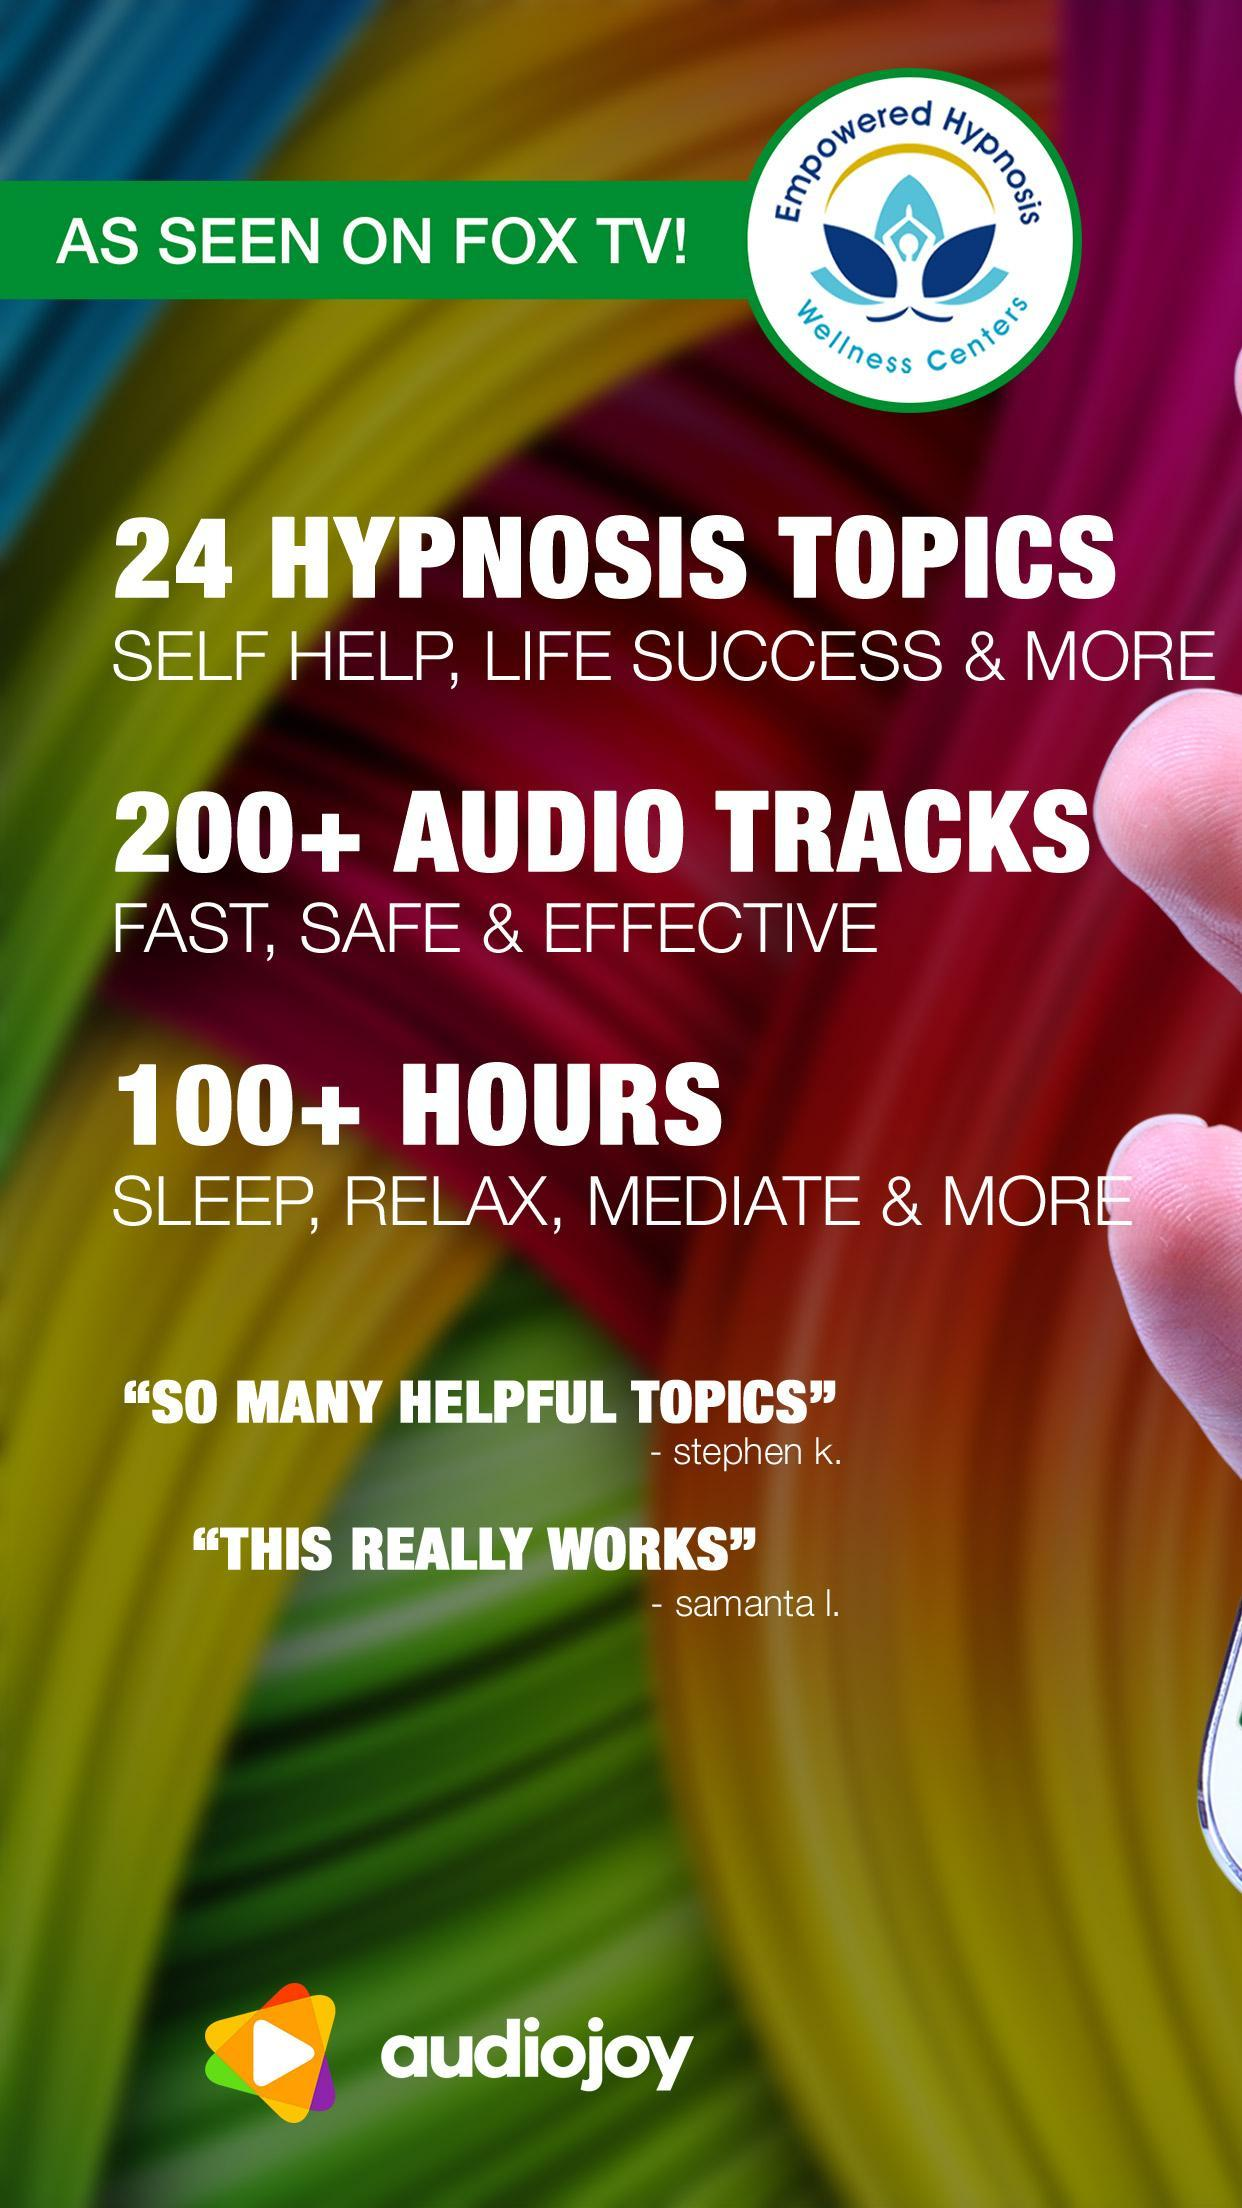 Self Hypnosis Audio Companion for Android - APK Download